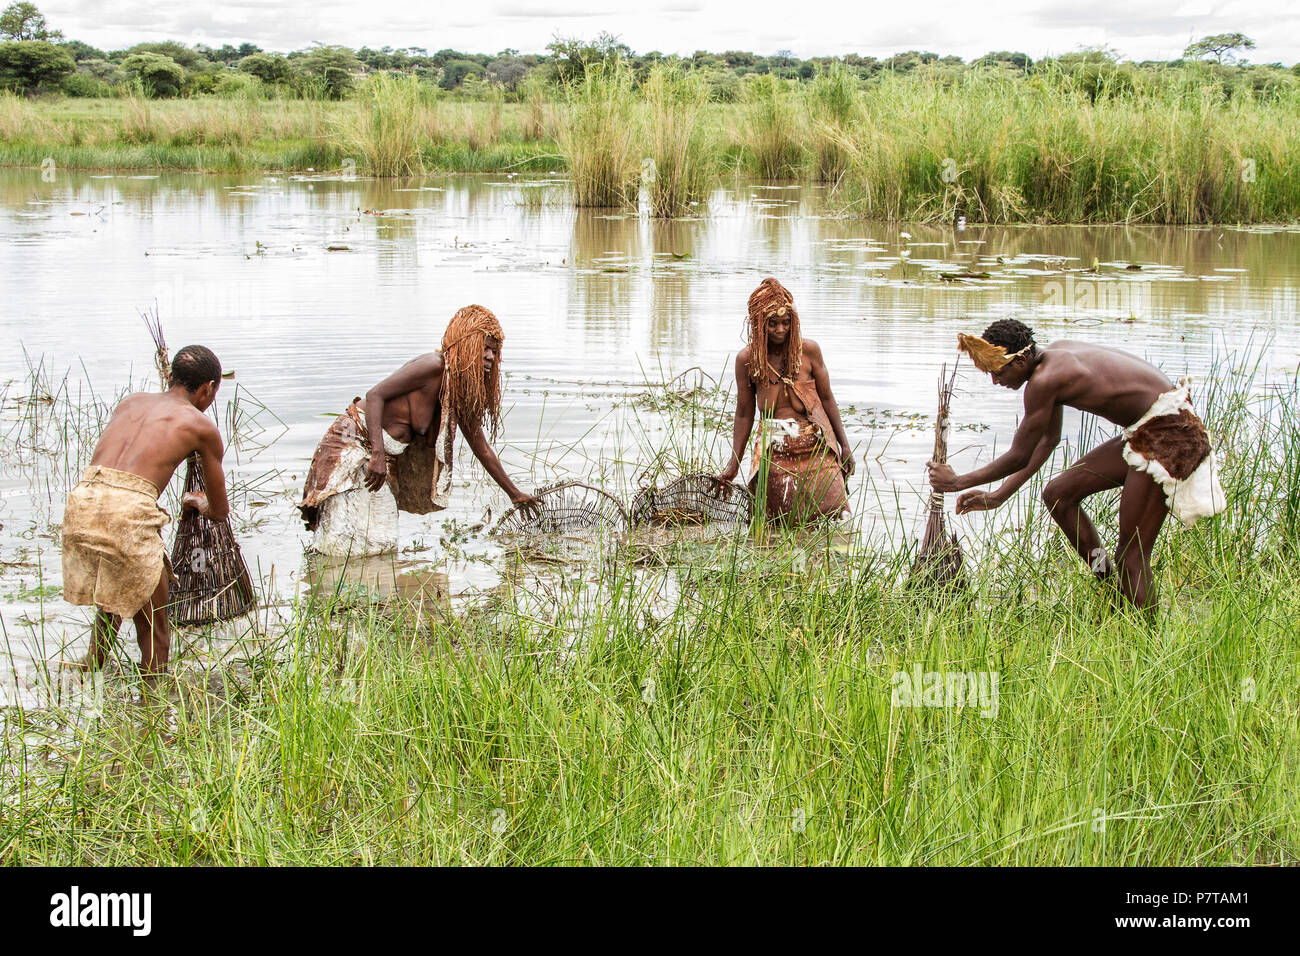 The living museum of the Mbunza on the Kavango river near Rundu have recreated a sustainable, authentic, pre-colonial village. Fish being caught - Stock Image